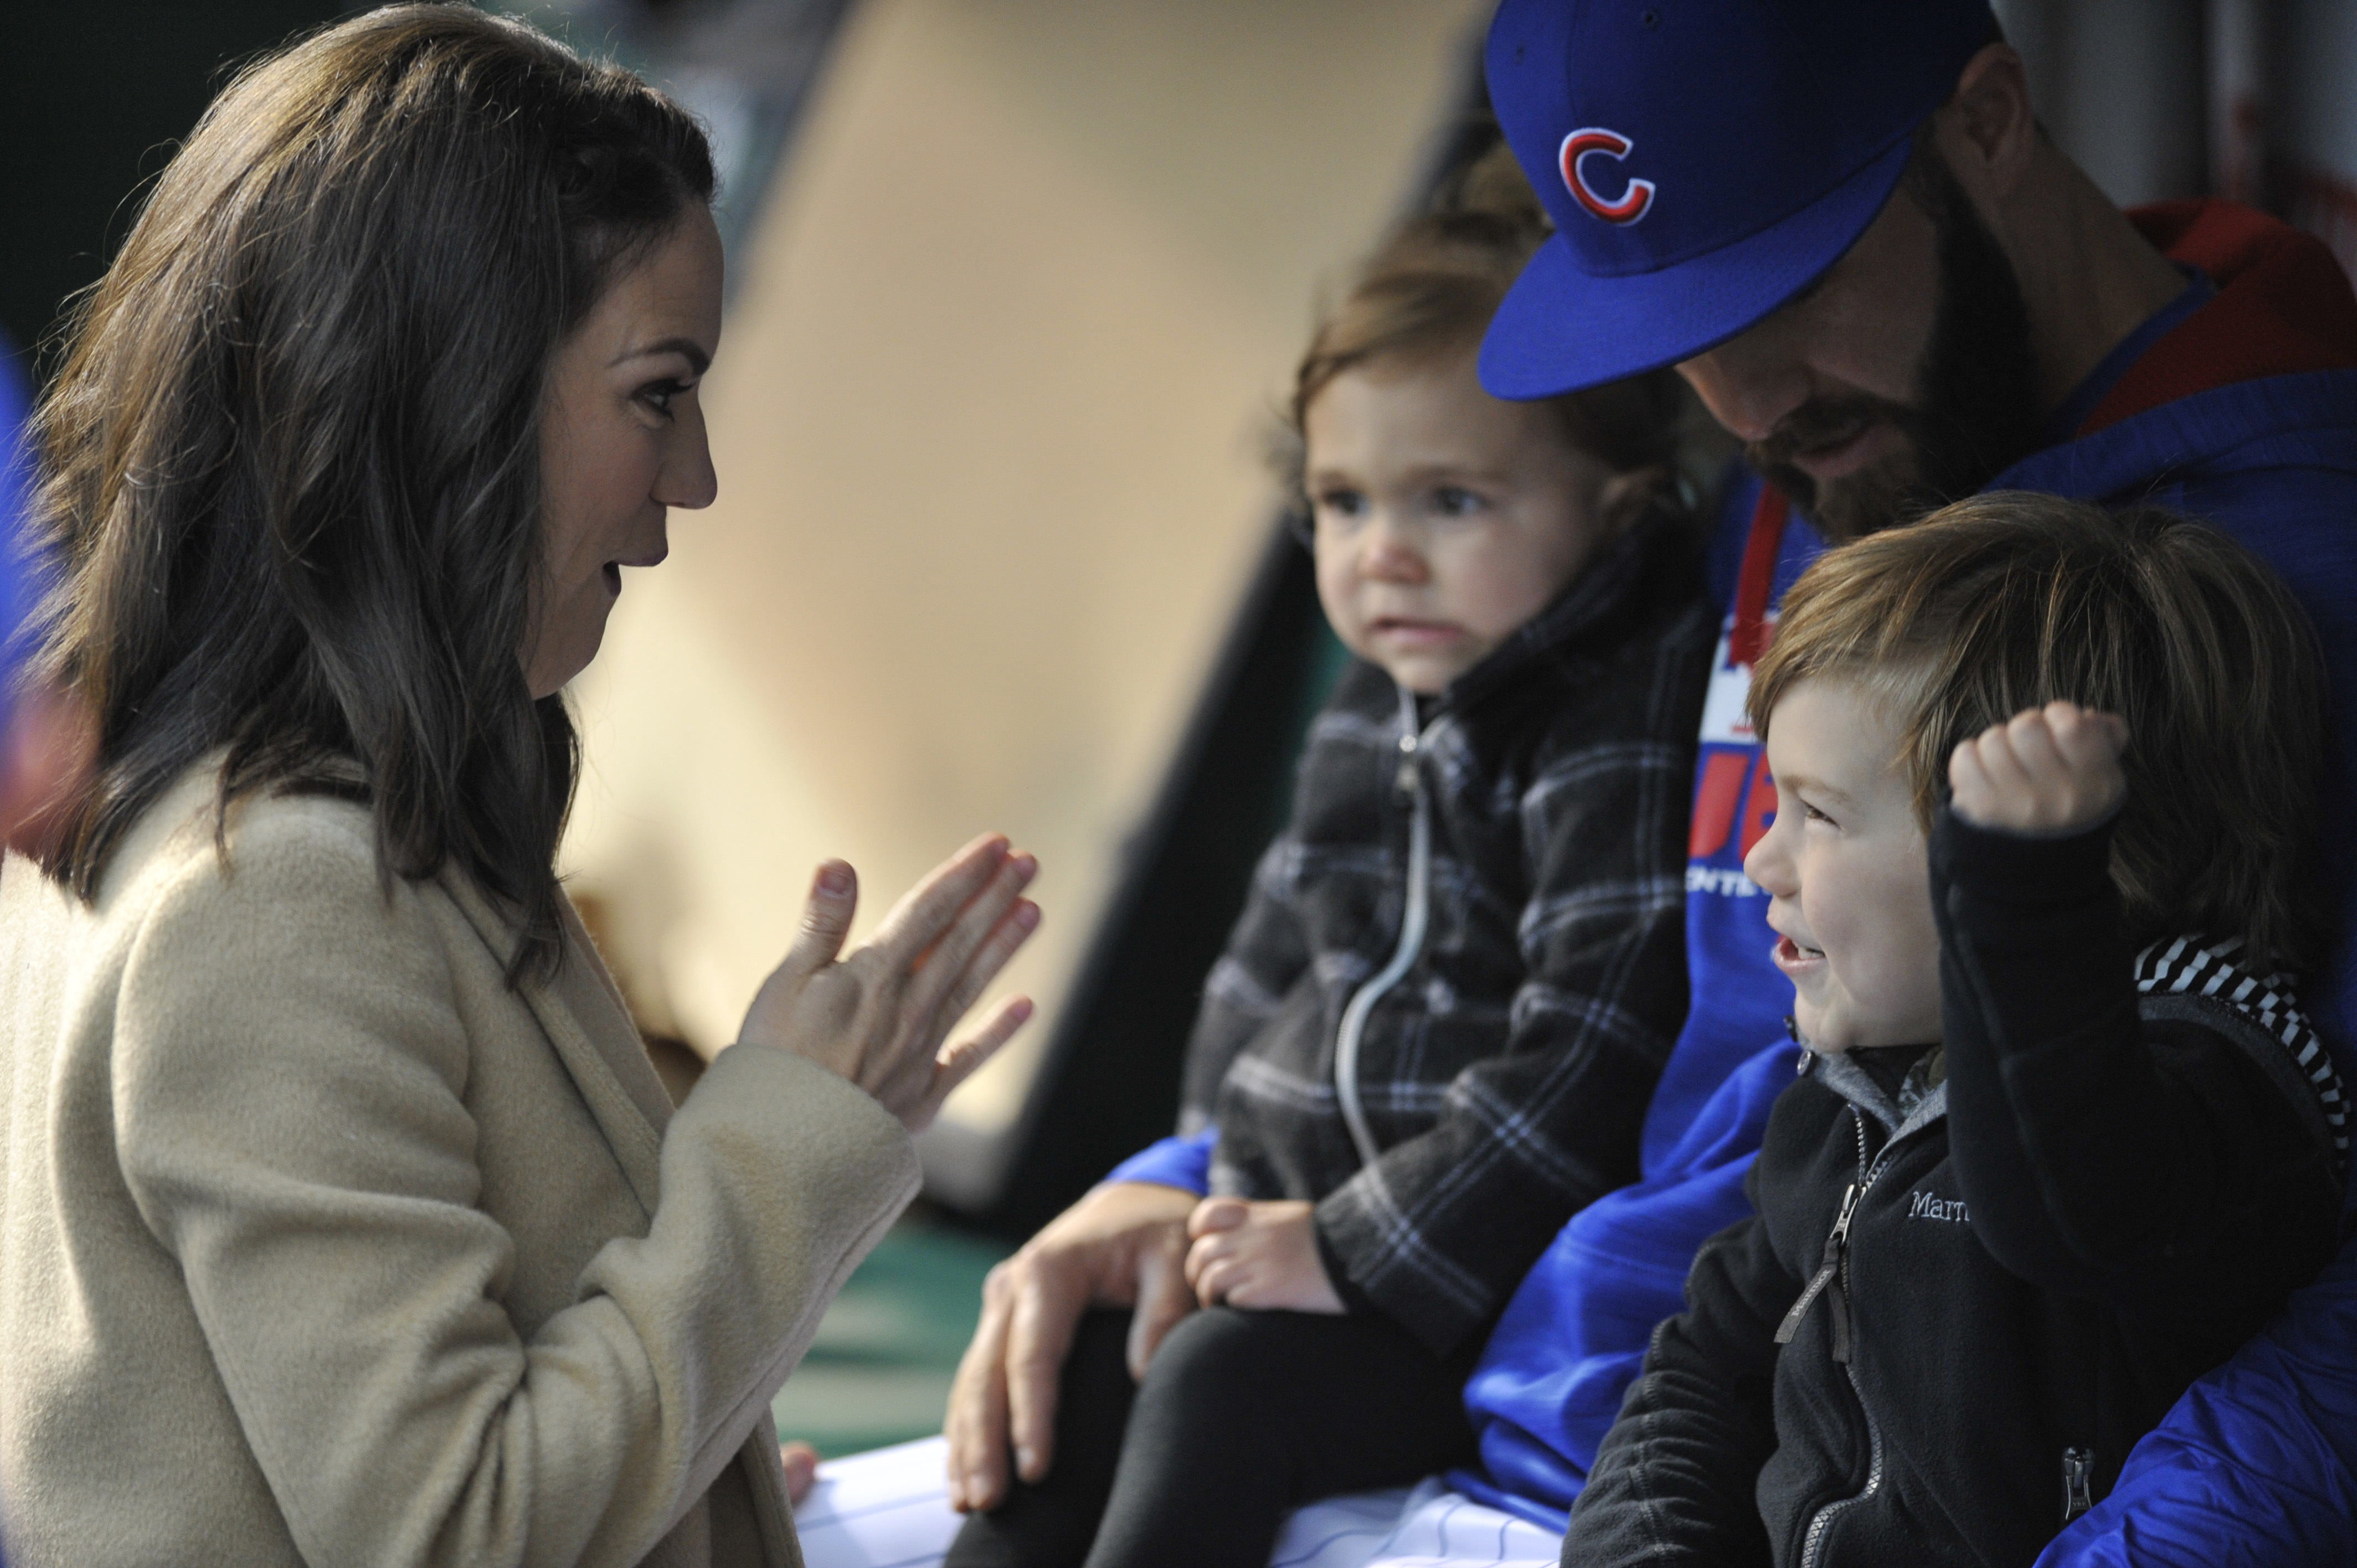 FILE - In this April 26, 2016, file photo, Chicago Cubs pitcher Jake Arrieta, wife Brittany, daughter, Palmer, and son, Cooper, wait in a dugout before a ceremony honoring Arrieta before the Cubs' baseball game against the Milwaukee Brewers in Chicago. Br